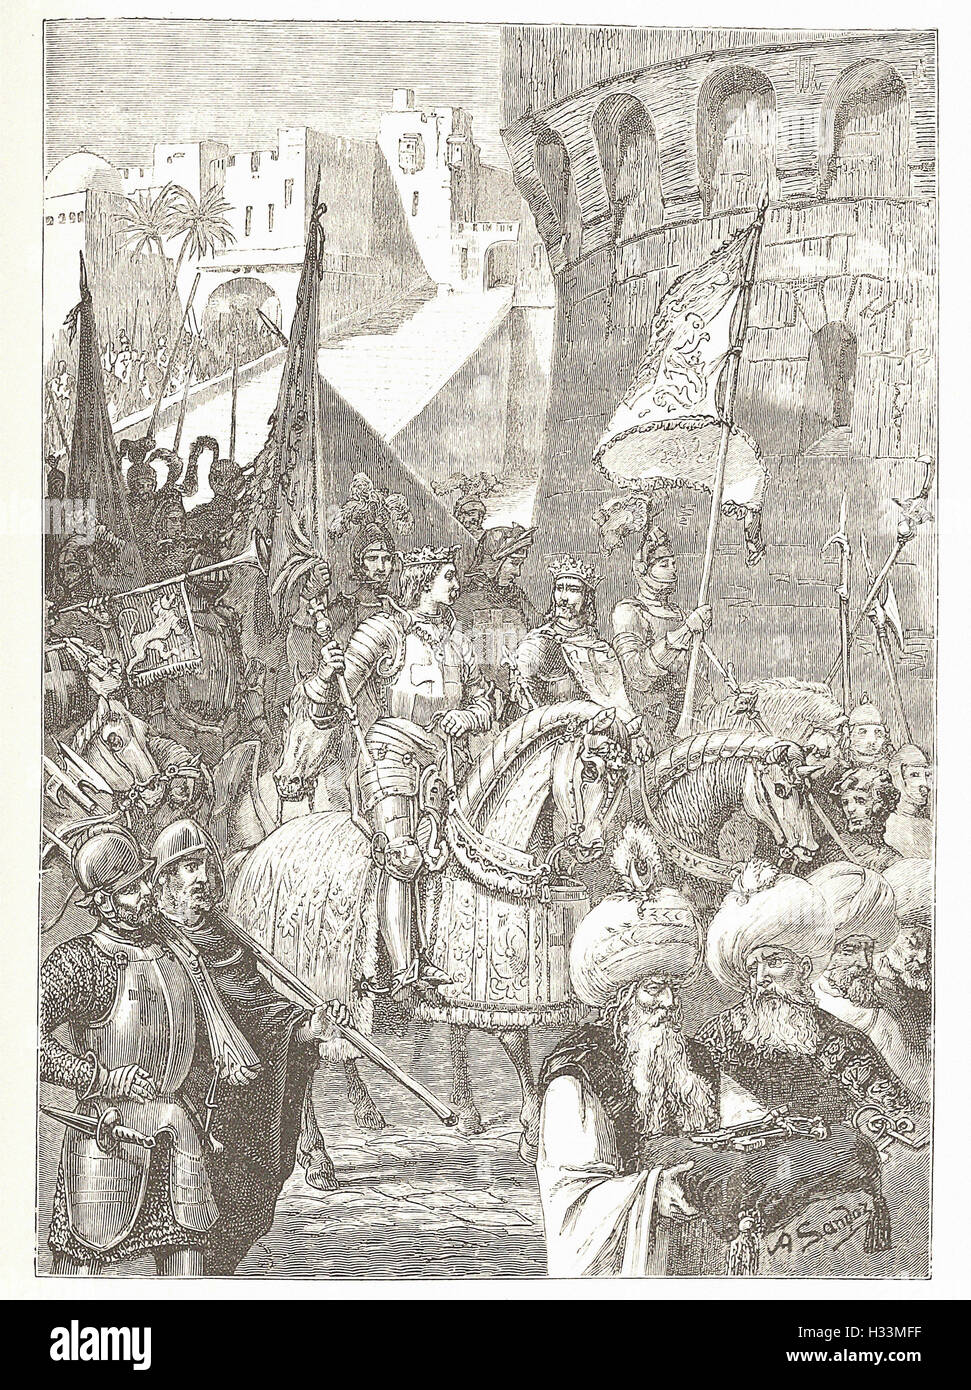 TRIUMPHAL ENTRY OF RTCHARD I. AND PHILIP AUGUSTUS INTO ACRE - from 'Cassell's Illustrated Universal History' - Stock Image